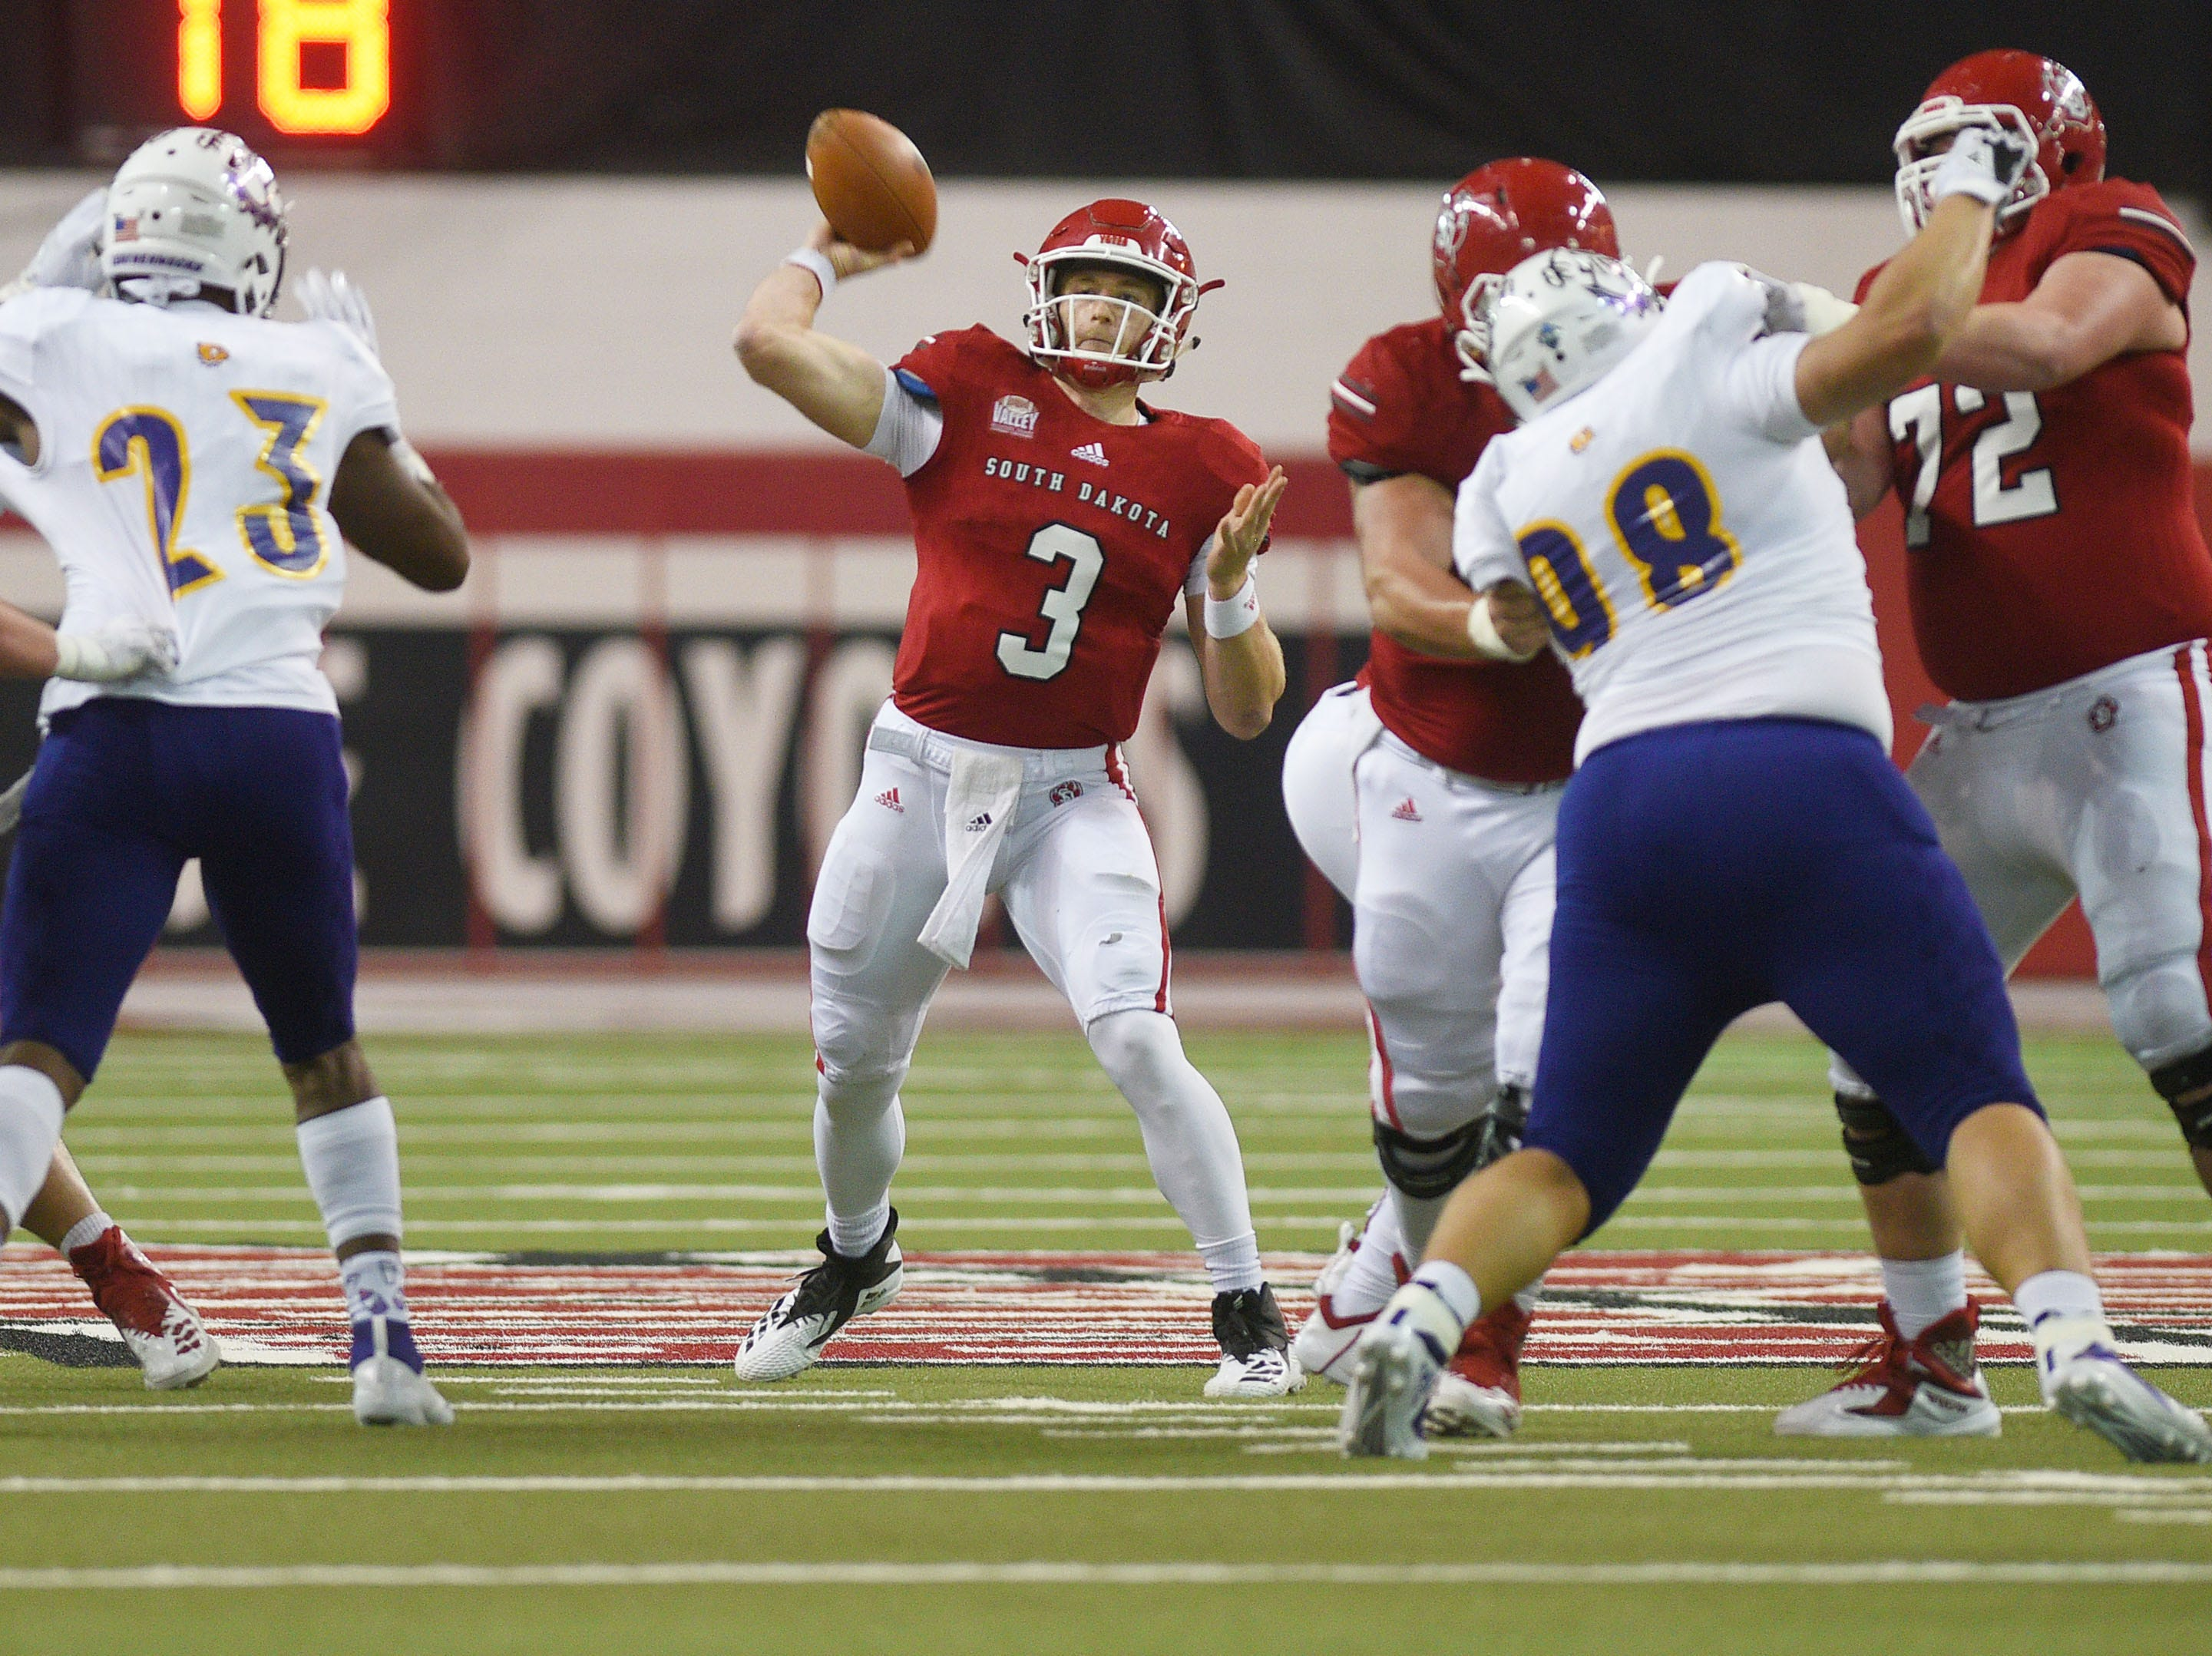 USD's Austin Simmons during the game against Western Illinois Saturday, Nov. 10, at the DakotaDome in Vermillion.